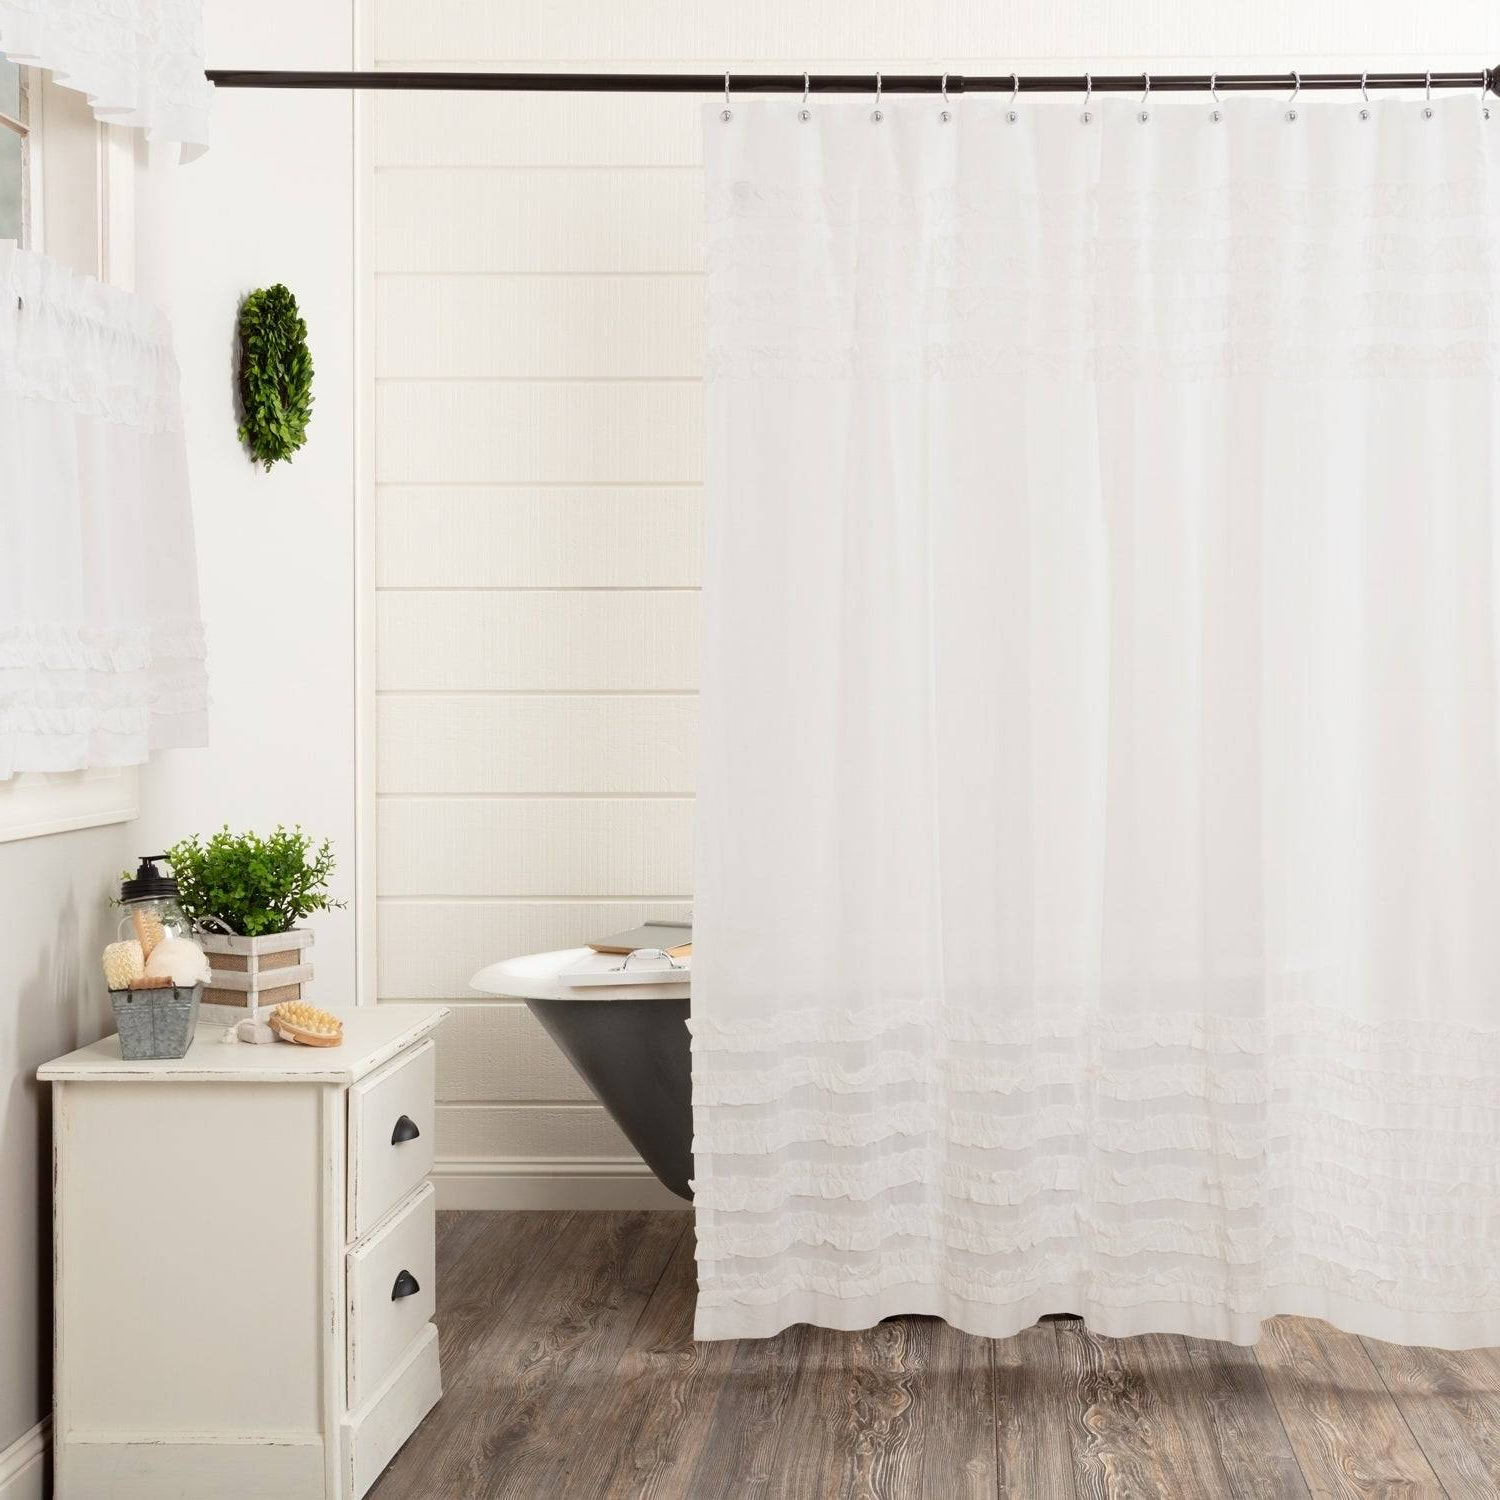 Rod Pocket Cotton Solid Color Ruched Ruffle Kitchen Curtains For Most Recent Wonderful White Cotton Ruffle Shower Curtain Bathrooms (View 12 of 20)